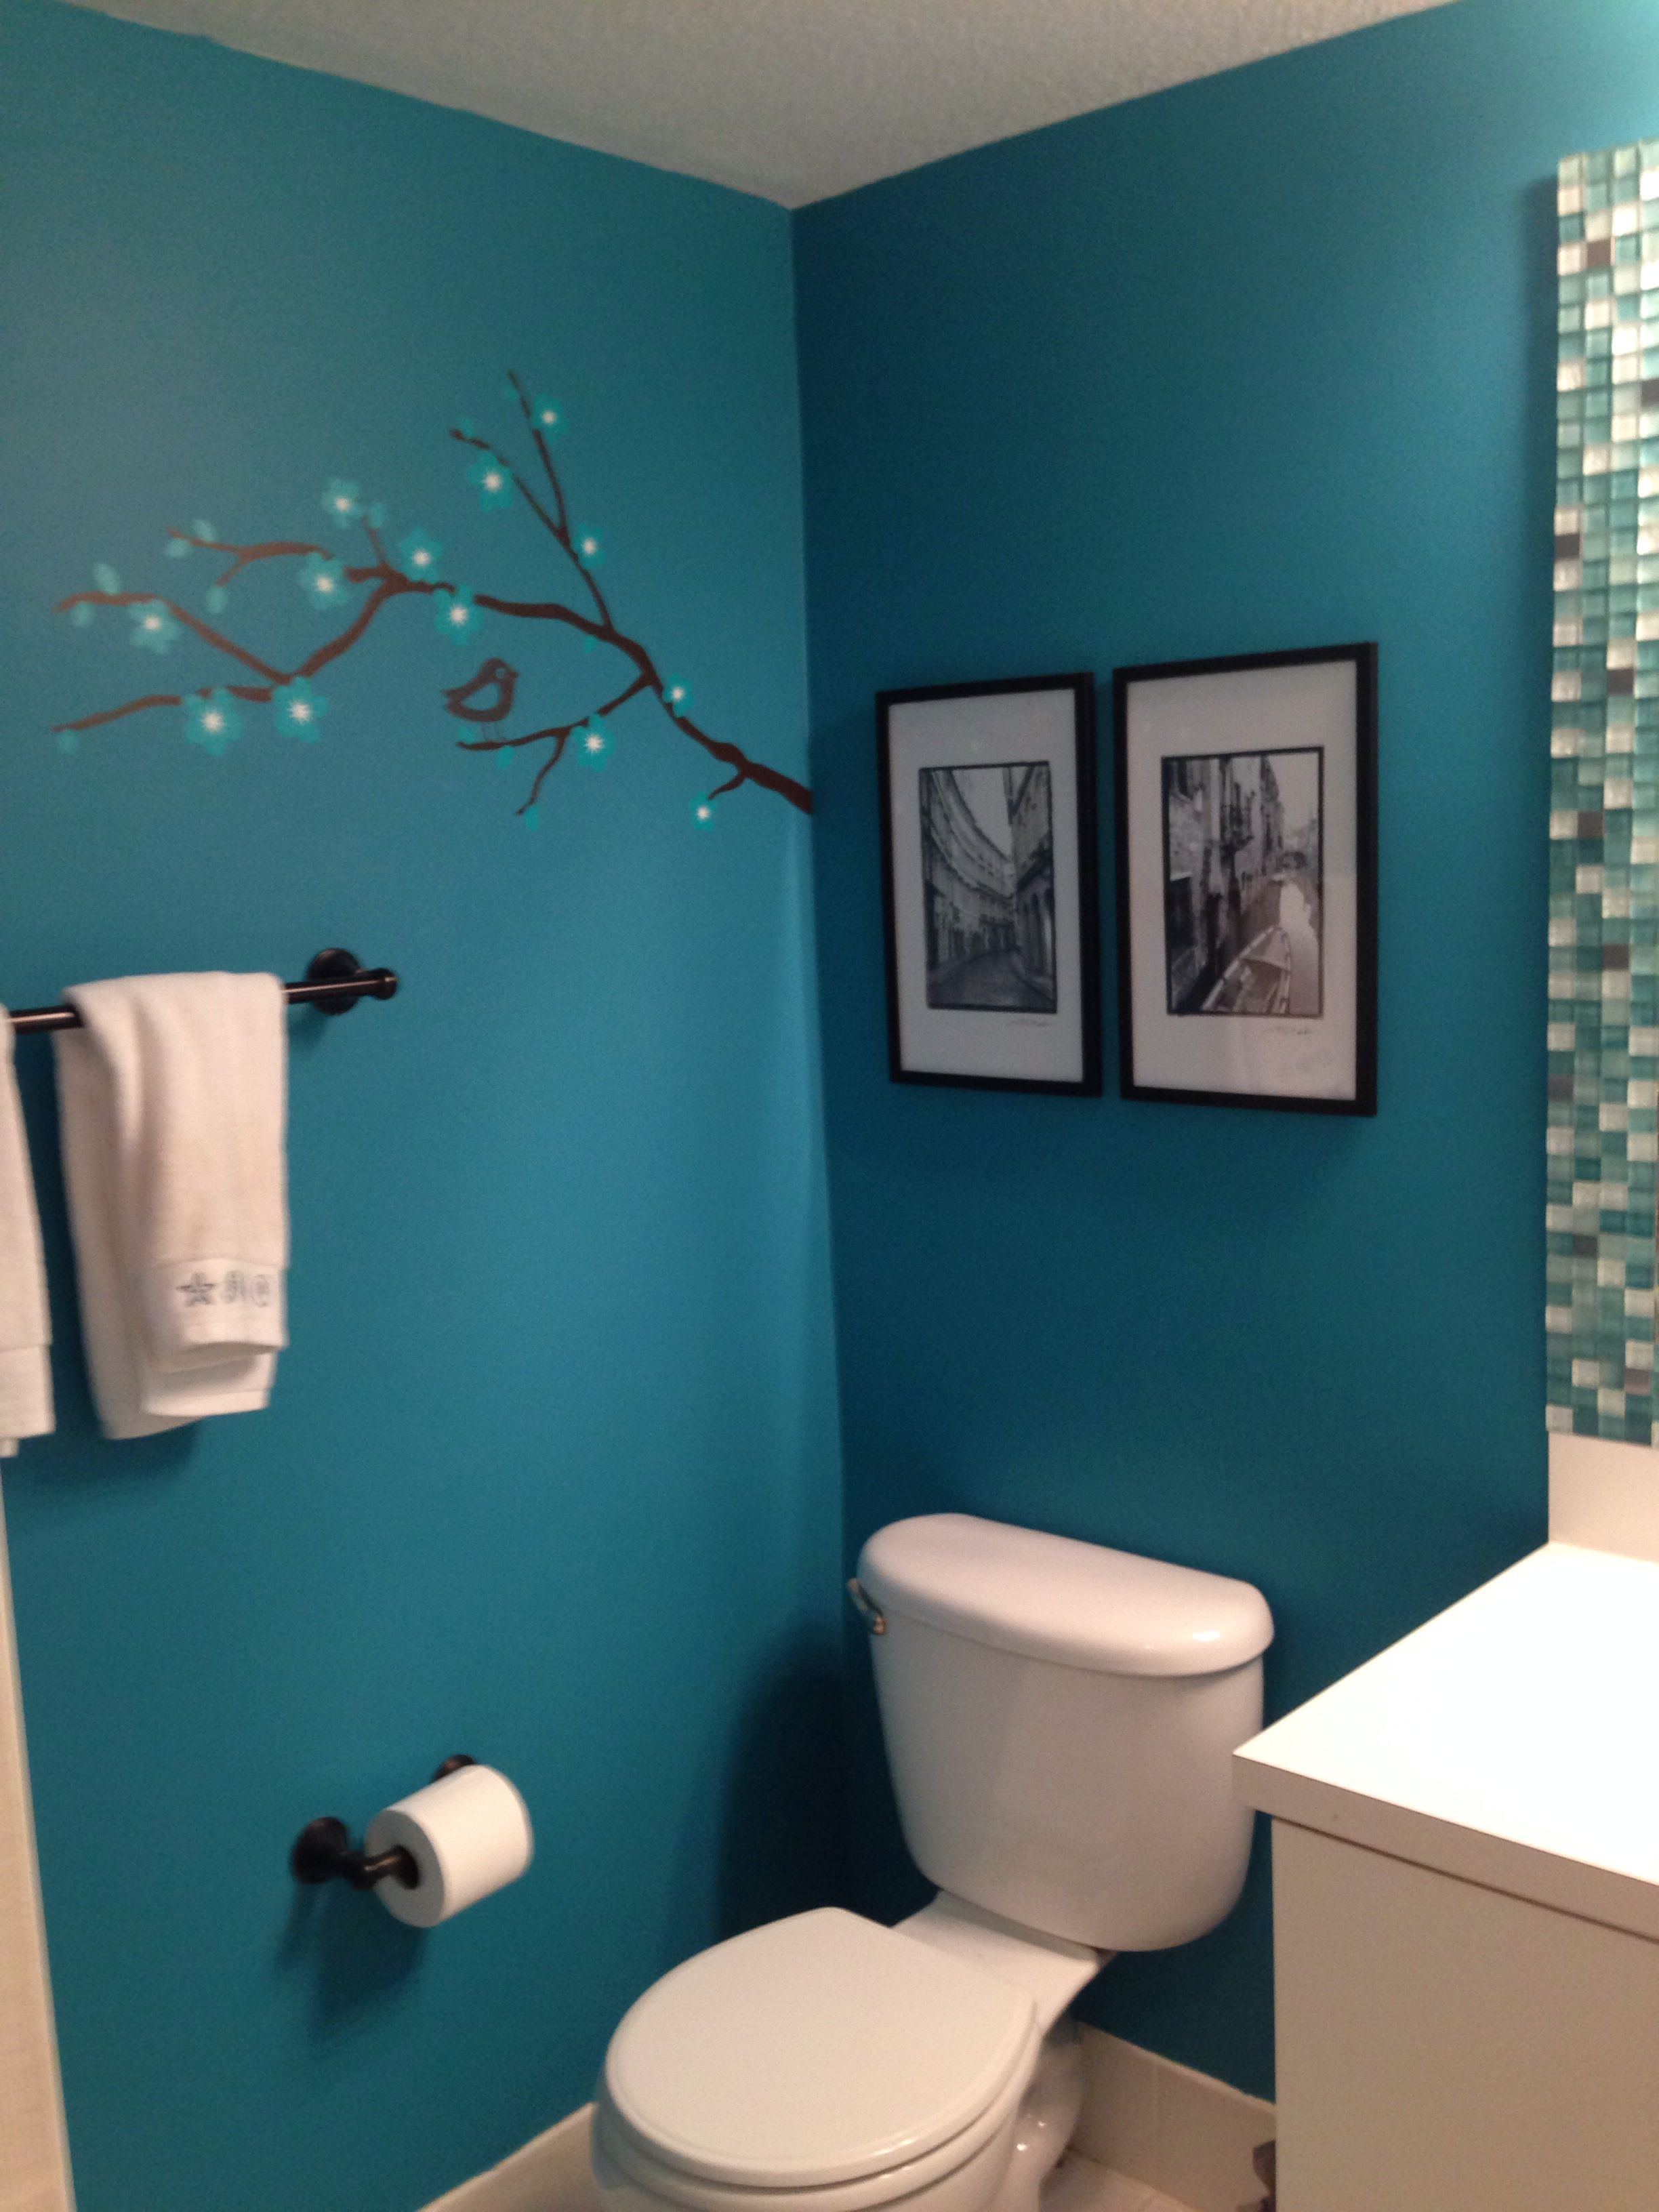 Pleasing I Would Love Black And Whites In Our New Teal Bathroom New Home Interior And Landscaping Ferensignezvosmurscom